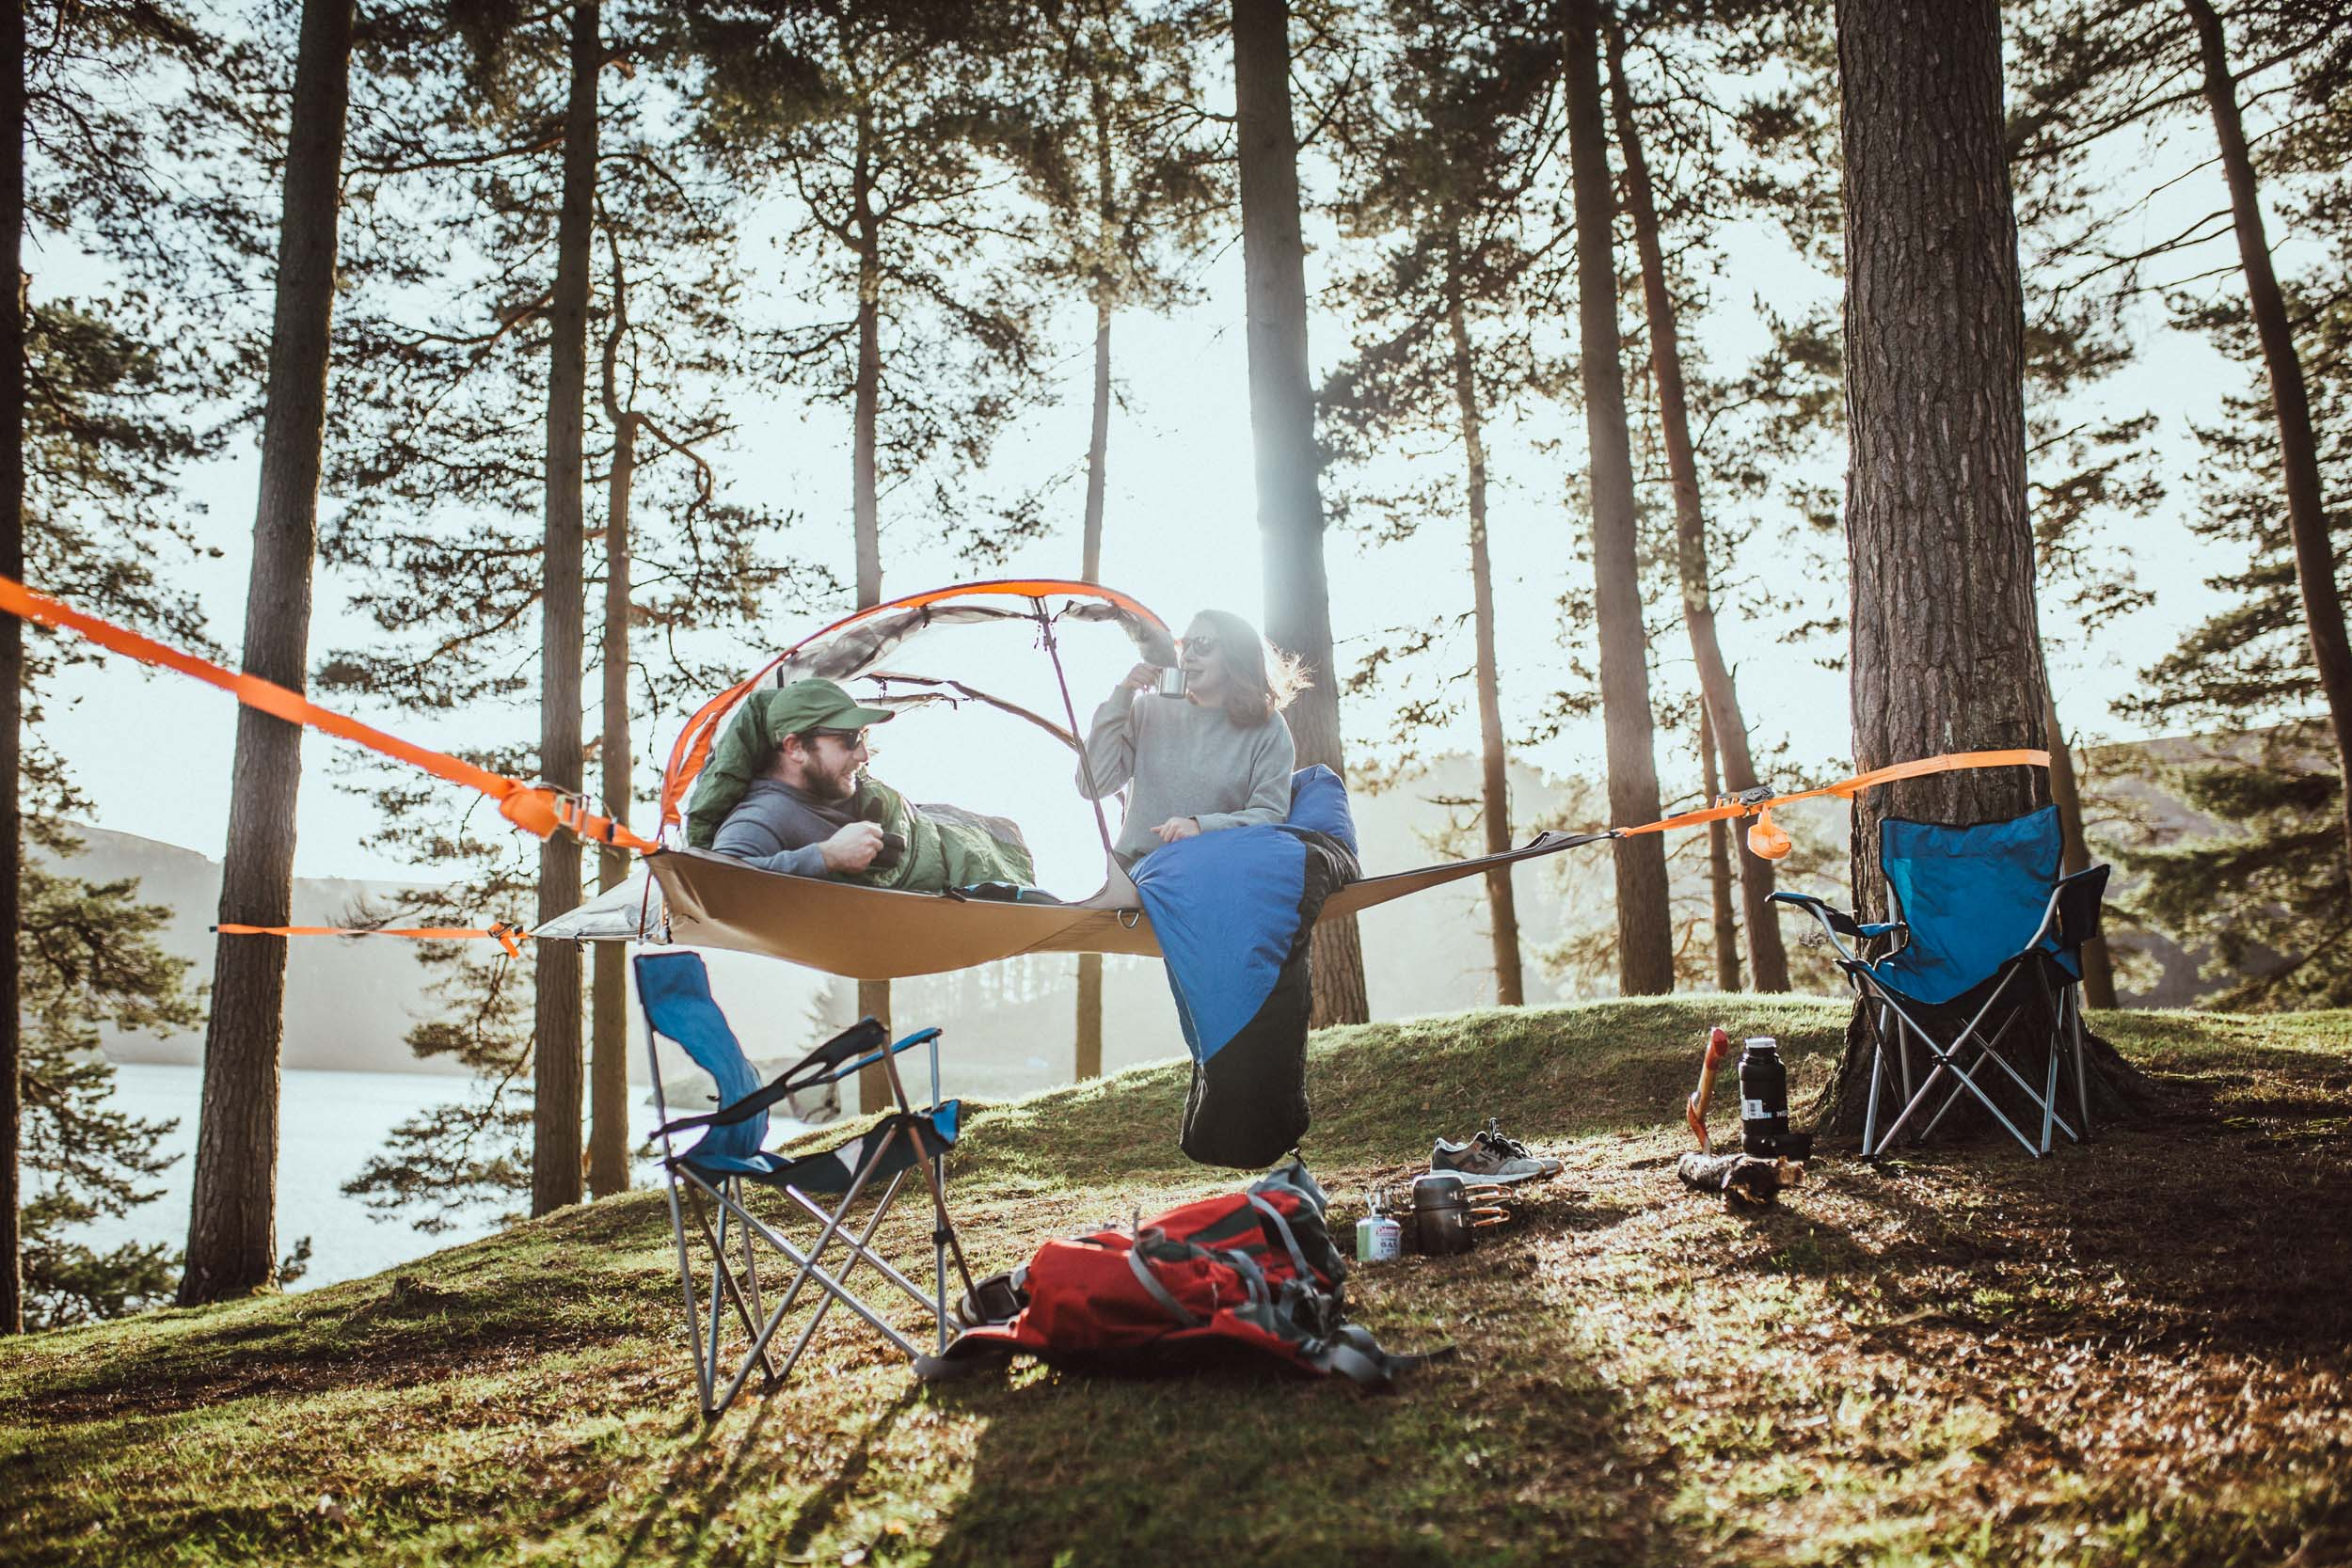 Tentsile_Safaria_Lifestyle_ByTomkahler_Lowres (52 of 63).jpg